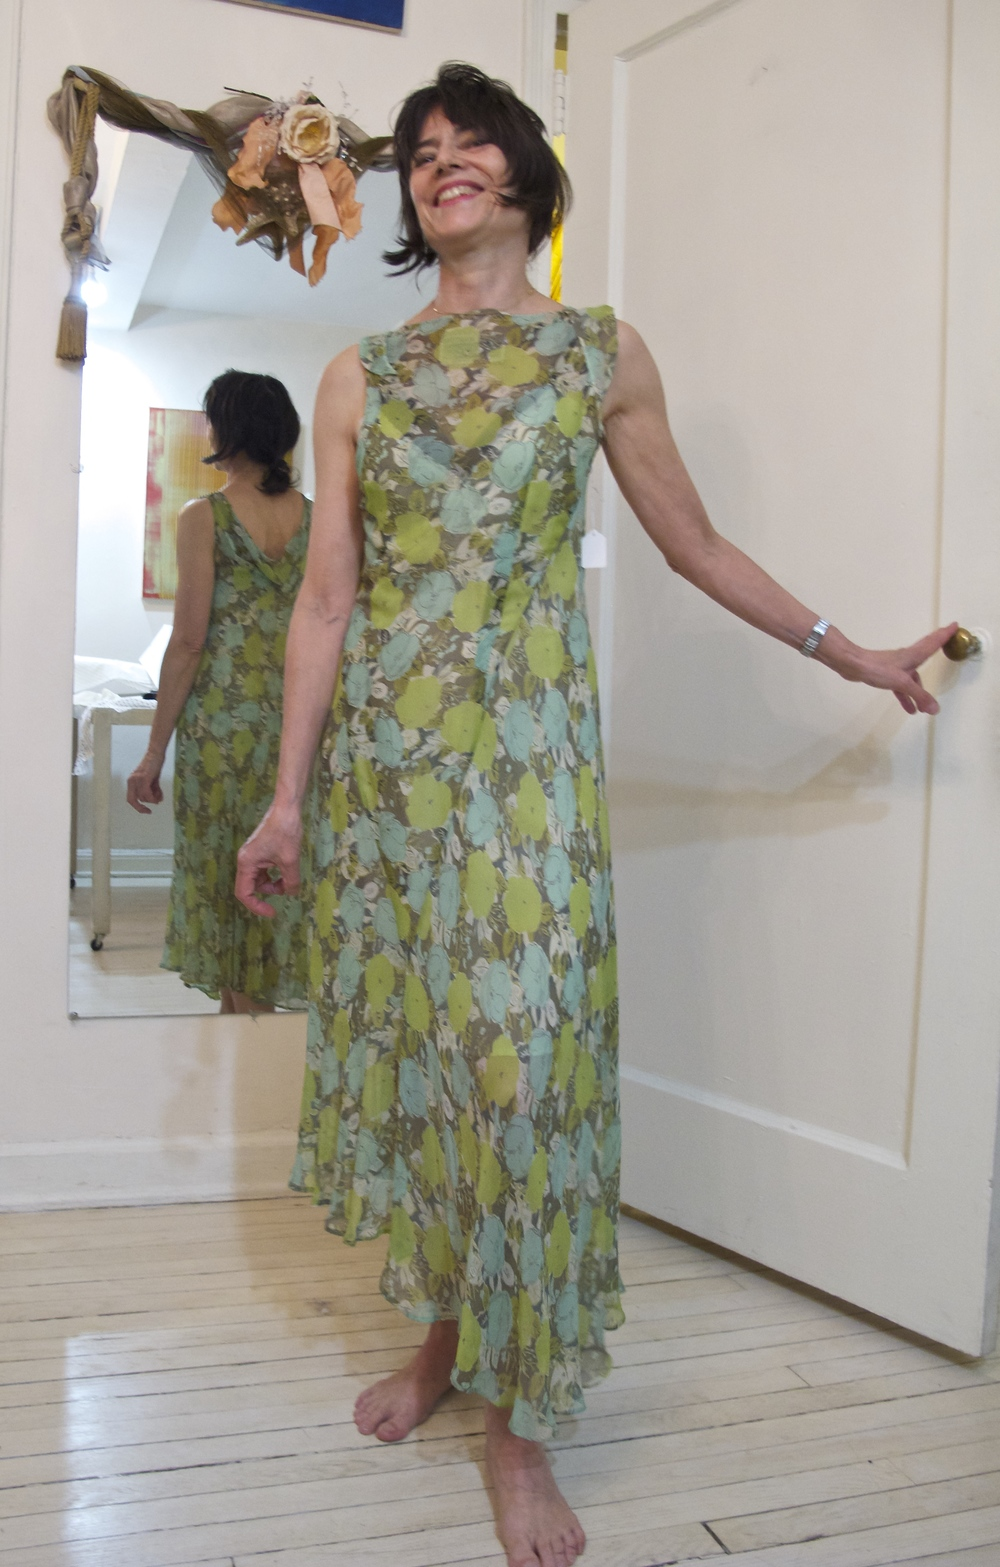 Flowered Chiffon dress worn by Mary Jones as wedding guest